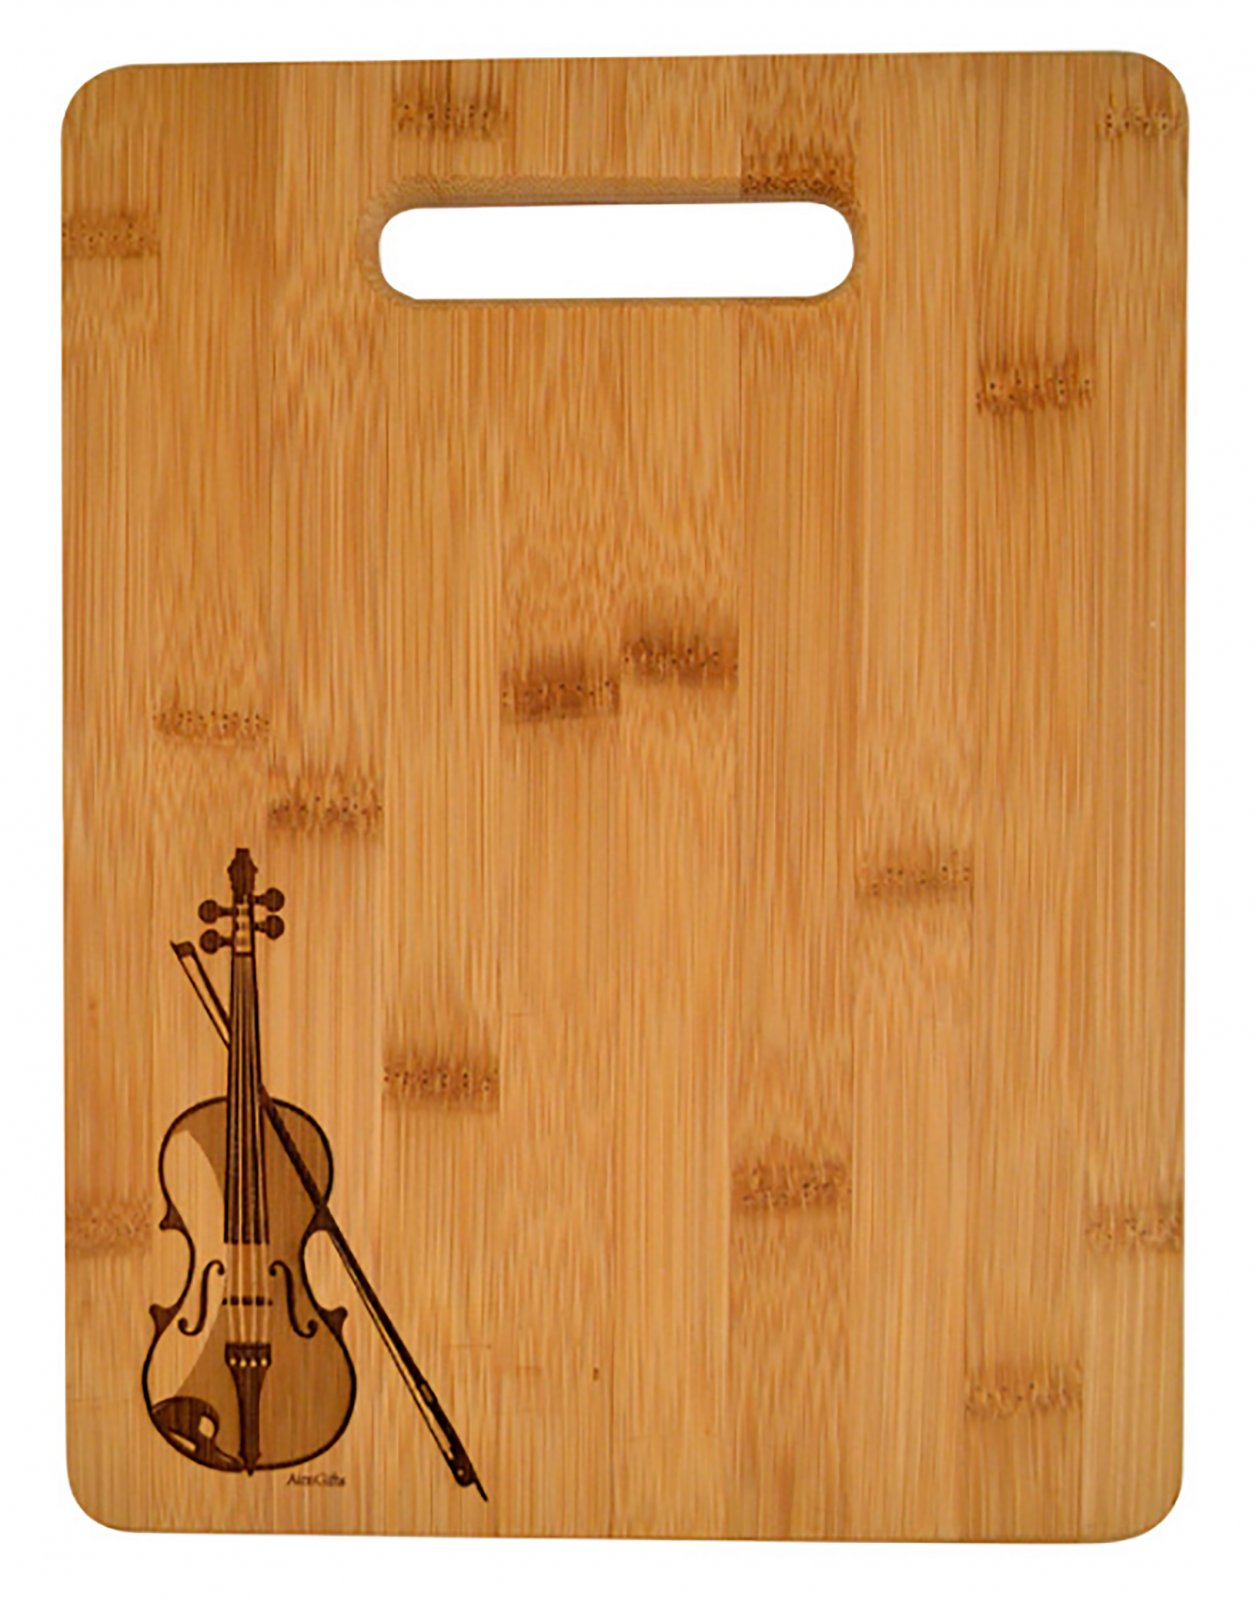 Cutting Board with Violin Engraved